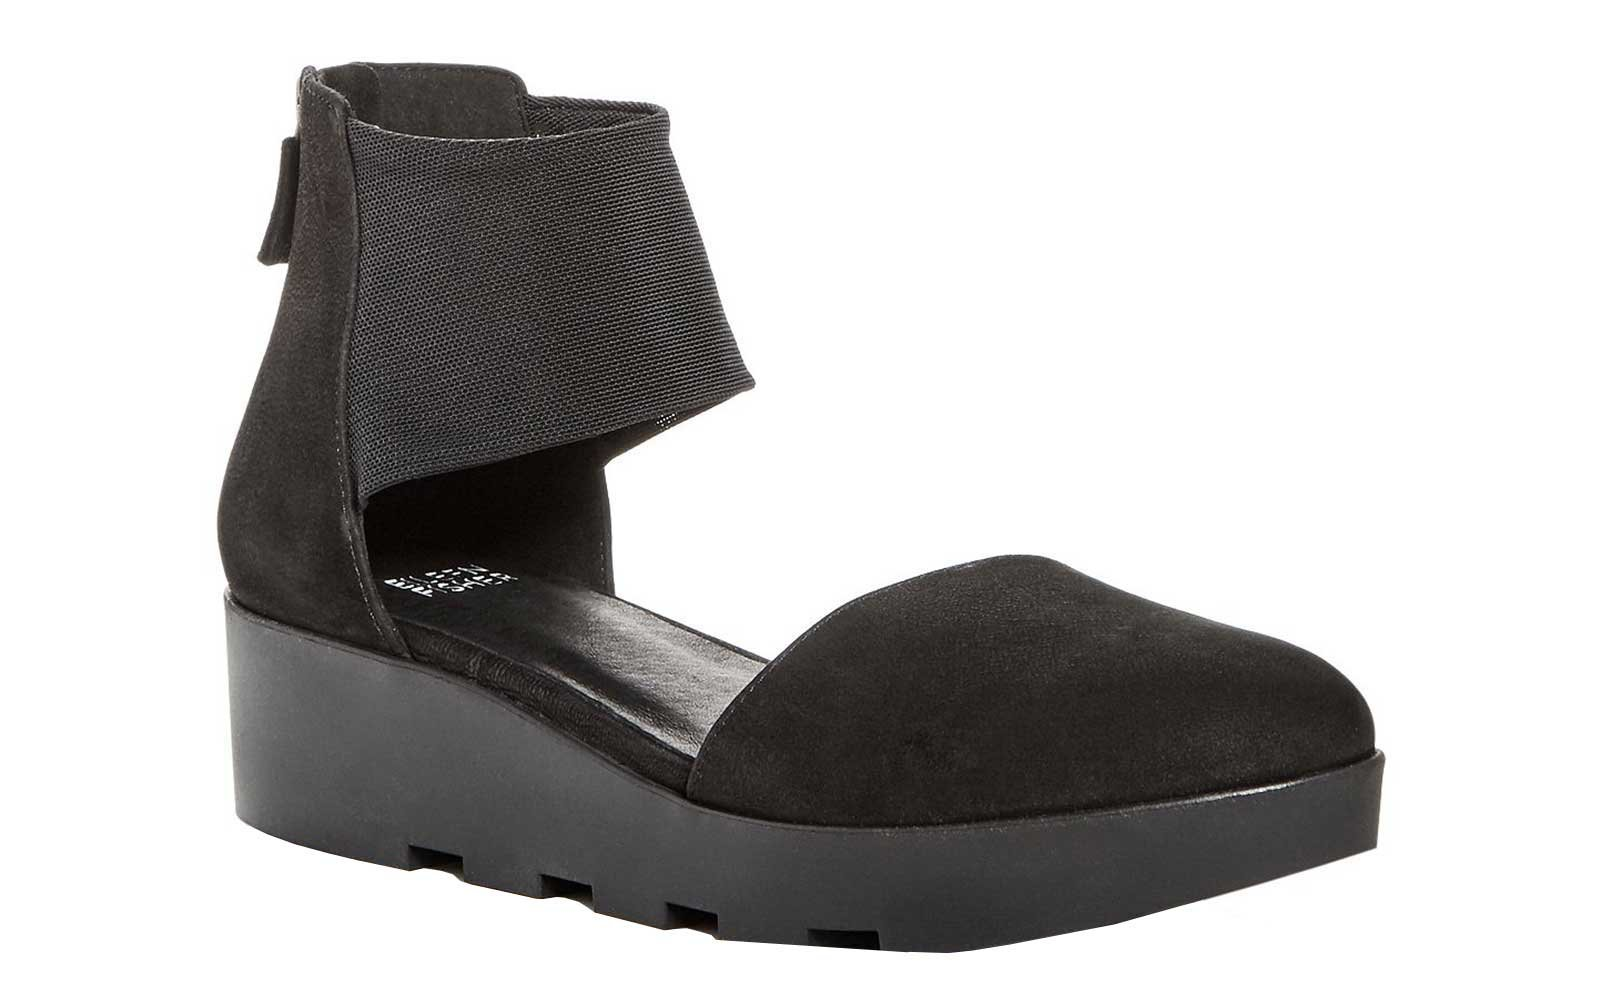 Eileen Fisher wedges for sale at Bloomingdale's